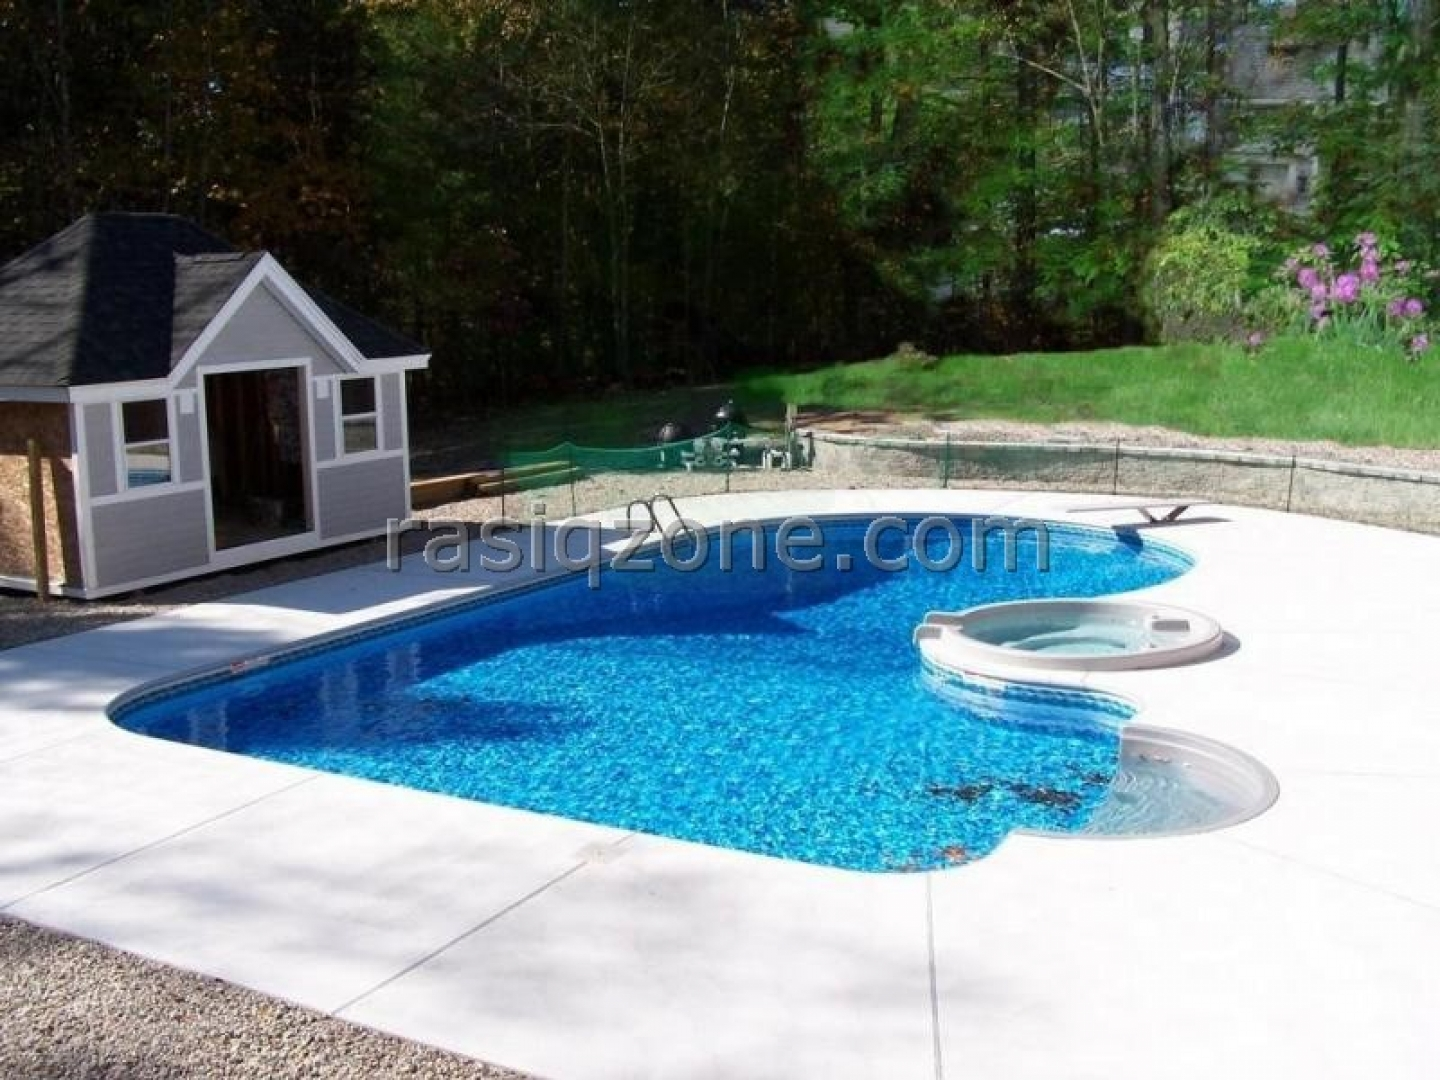 Backyard ideas with pools large and beautiful photos for In ground pool backyard ideas